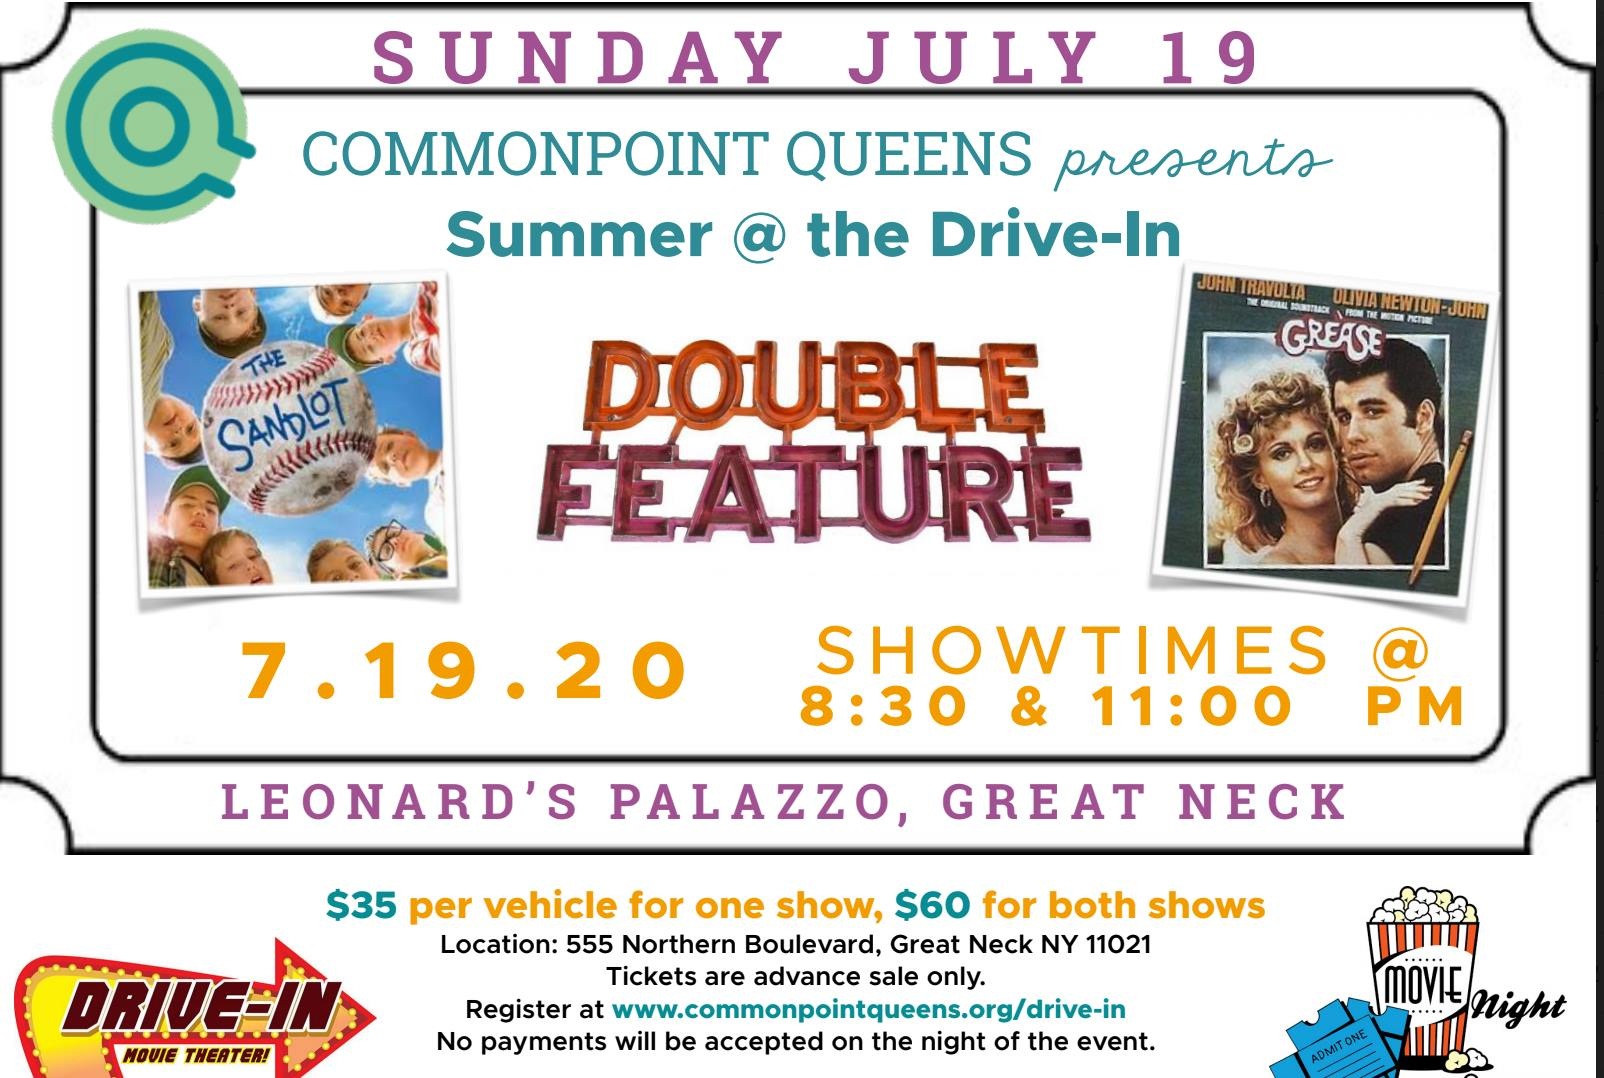 Flushing Bank Sponsors Commonpoint Queens' Drive-in Movie Fundraiser